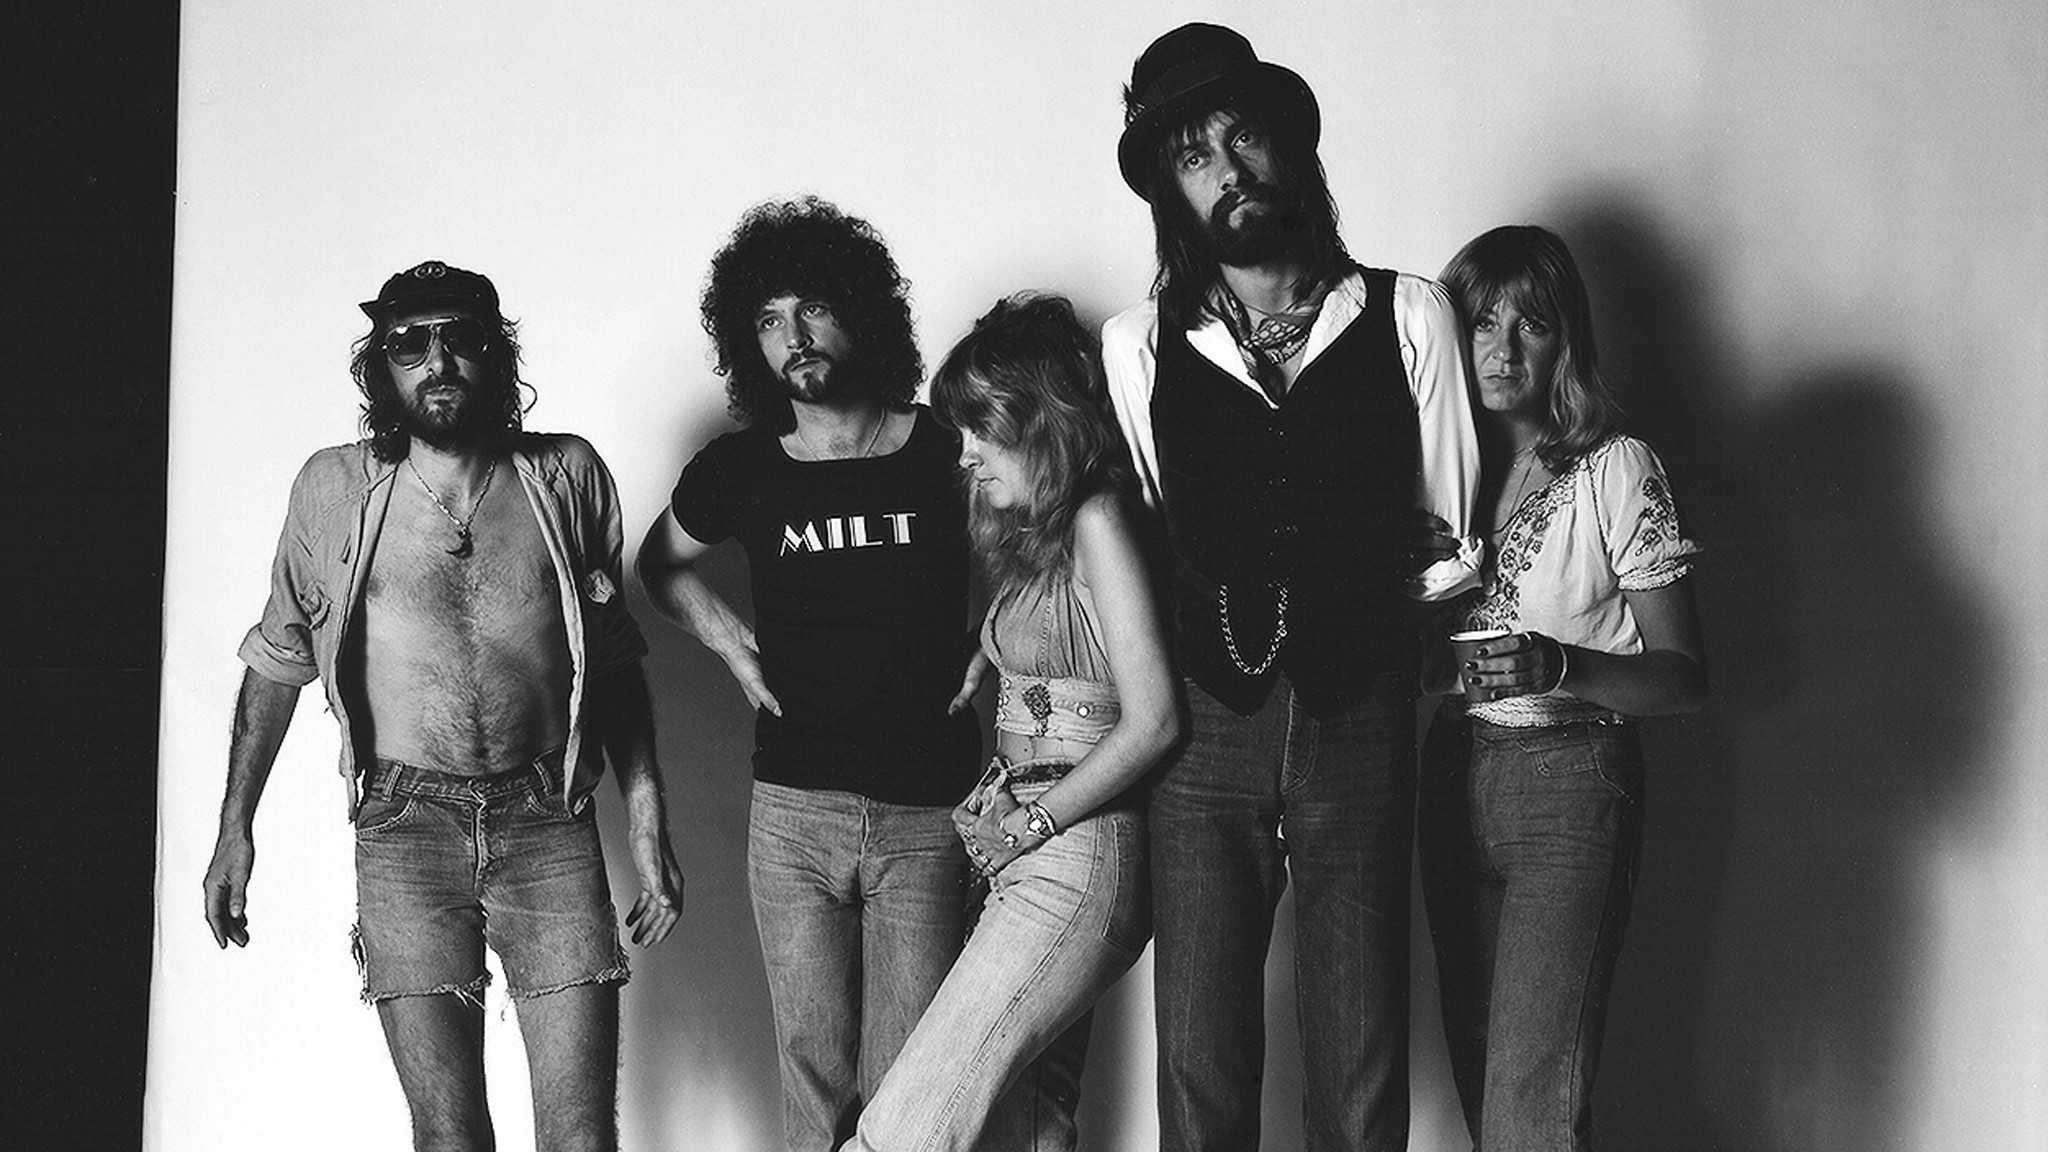 fleetwood mac The revamped fleetwood mac made their debut in an unlikely place, but it's clear the band is ready for a new era after parting ways with longtime bandmate lindsey buckingham earlier this year the legendary band, which includes longtime members mick fleetwood, stevie nicks, john mcvie, and.